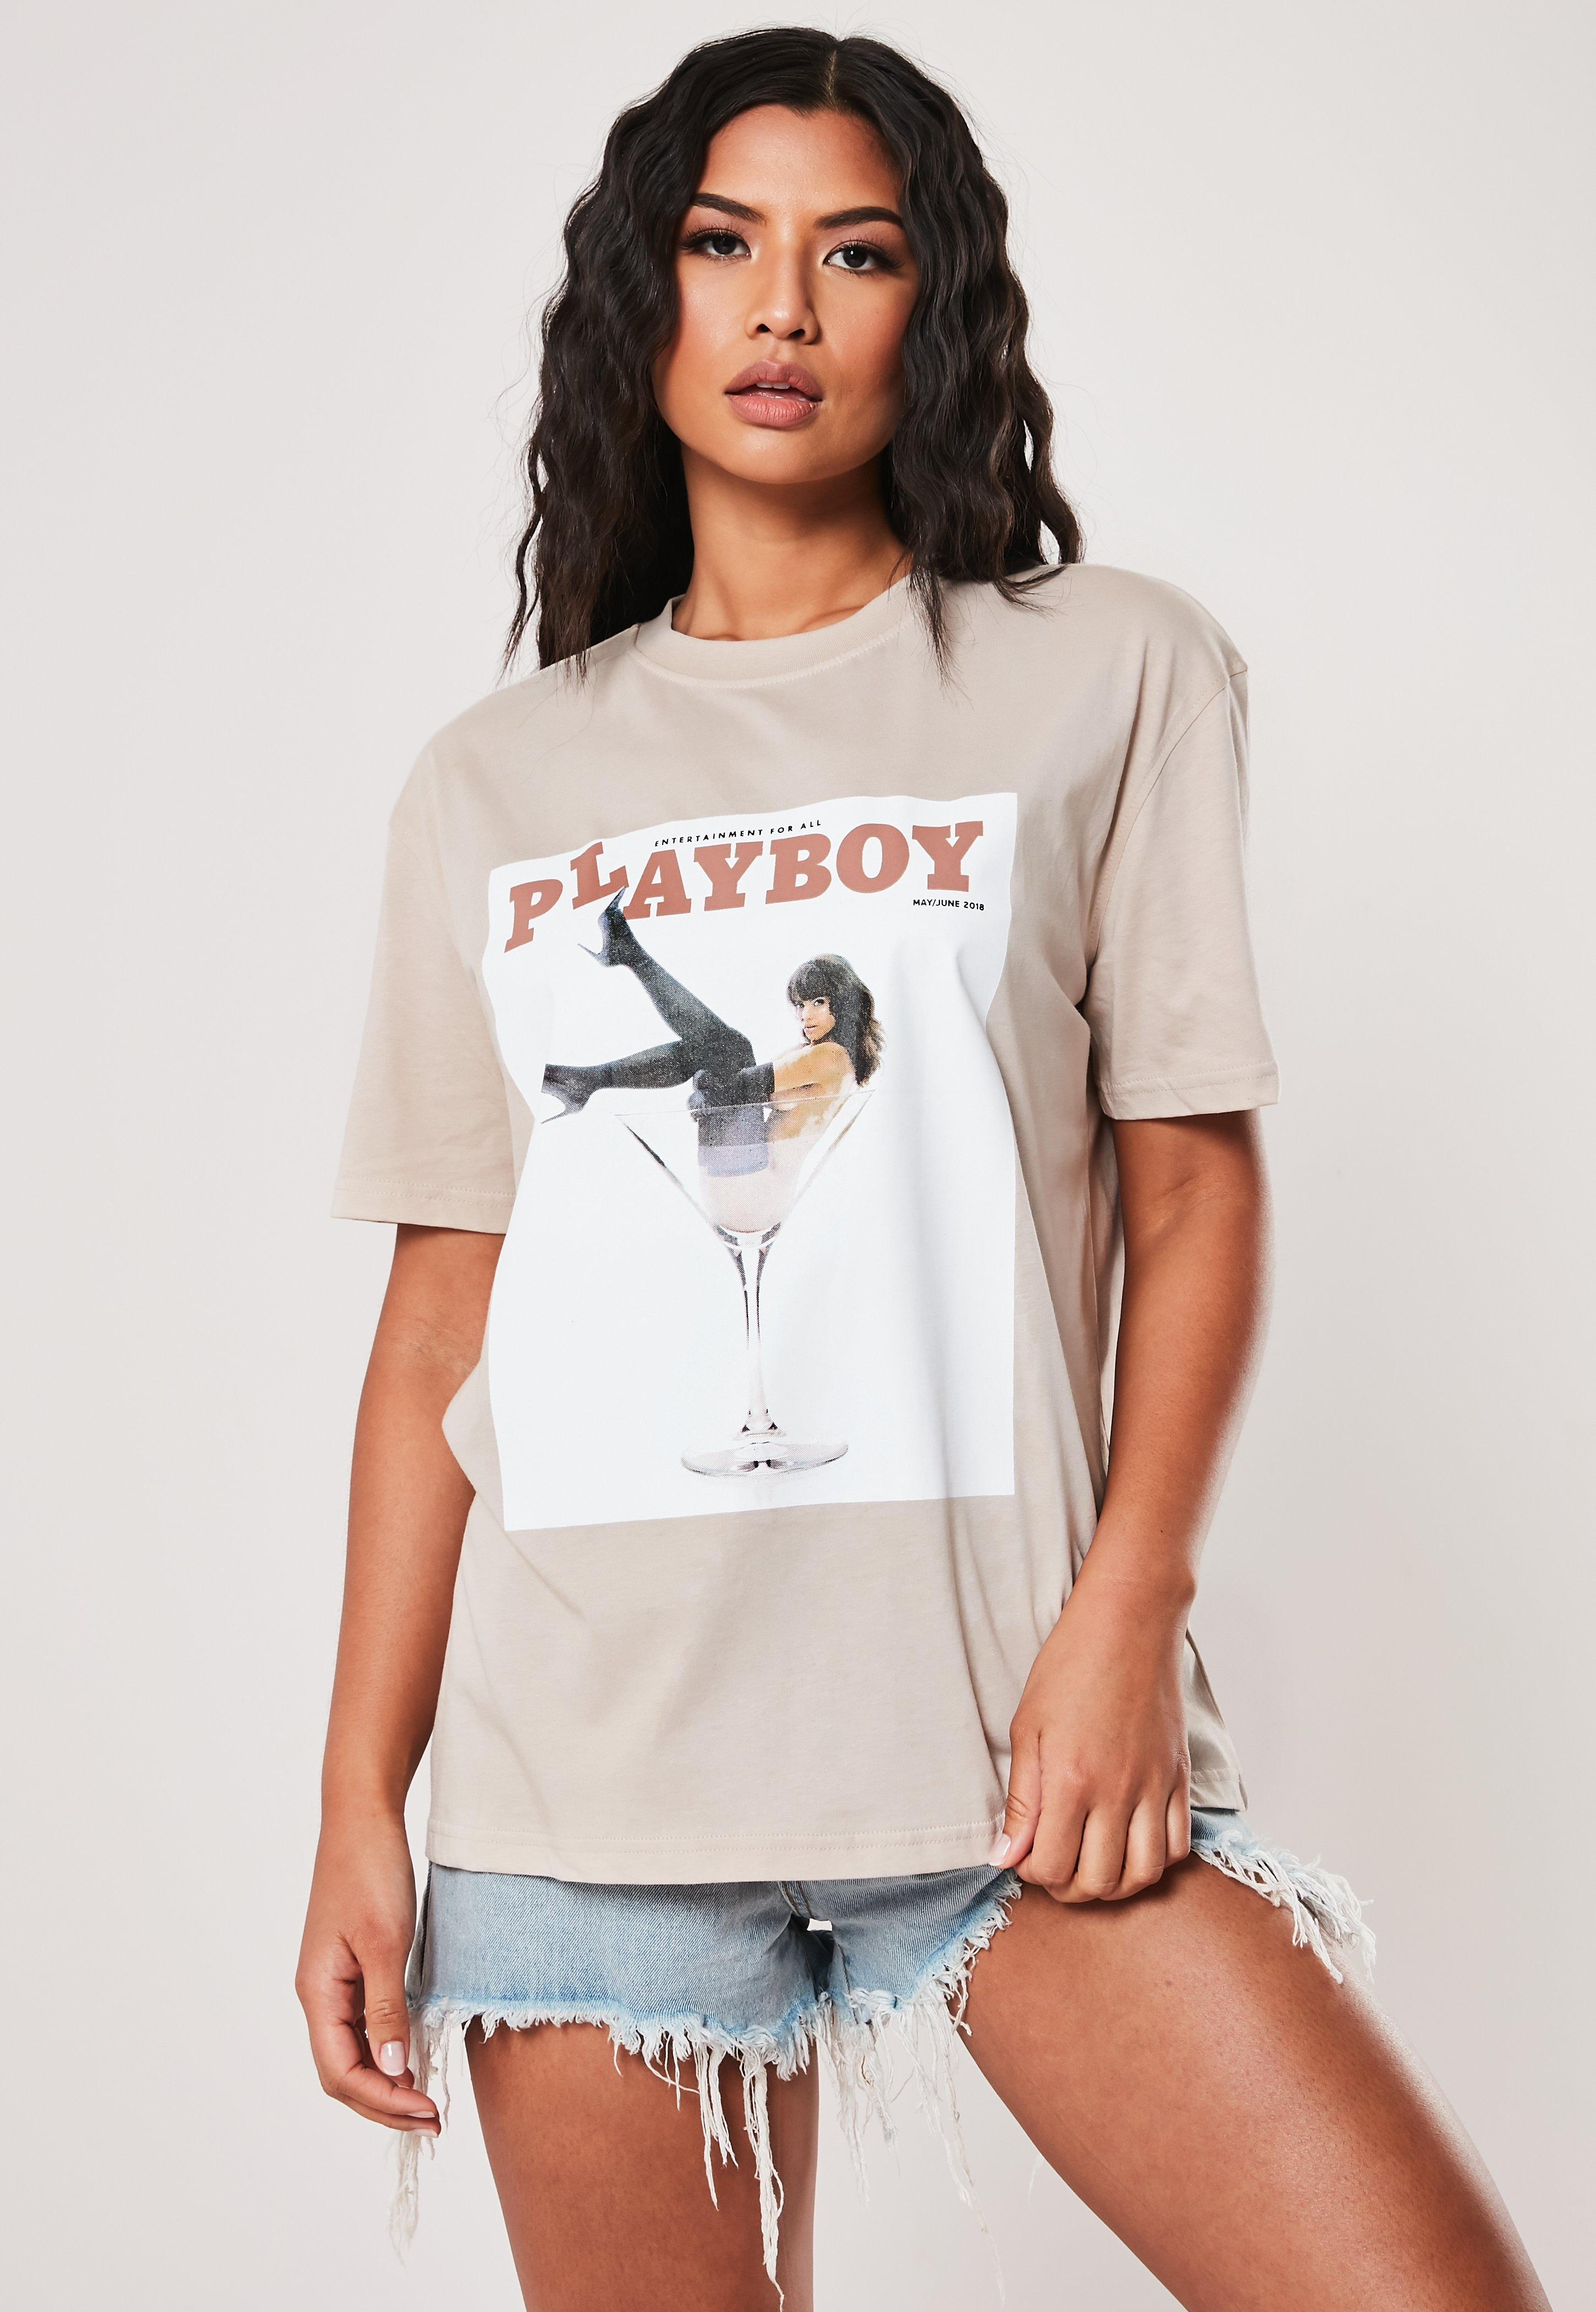 1ccf09591eb4 Playboy Clothing | Playboy T-Shirts, Necklaces & Tracksuits – Missguided